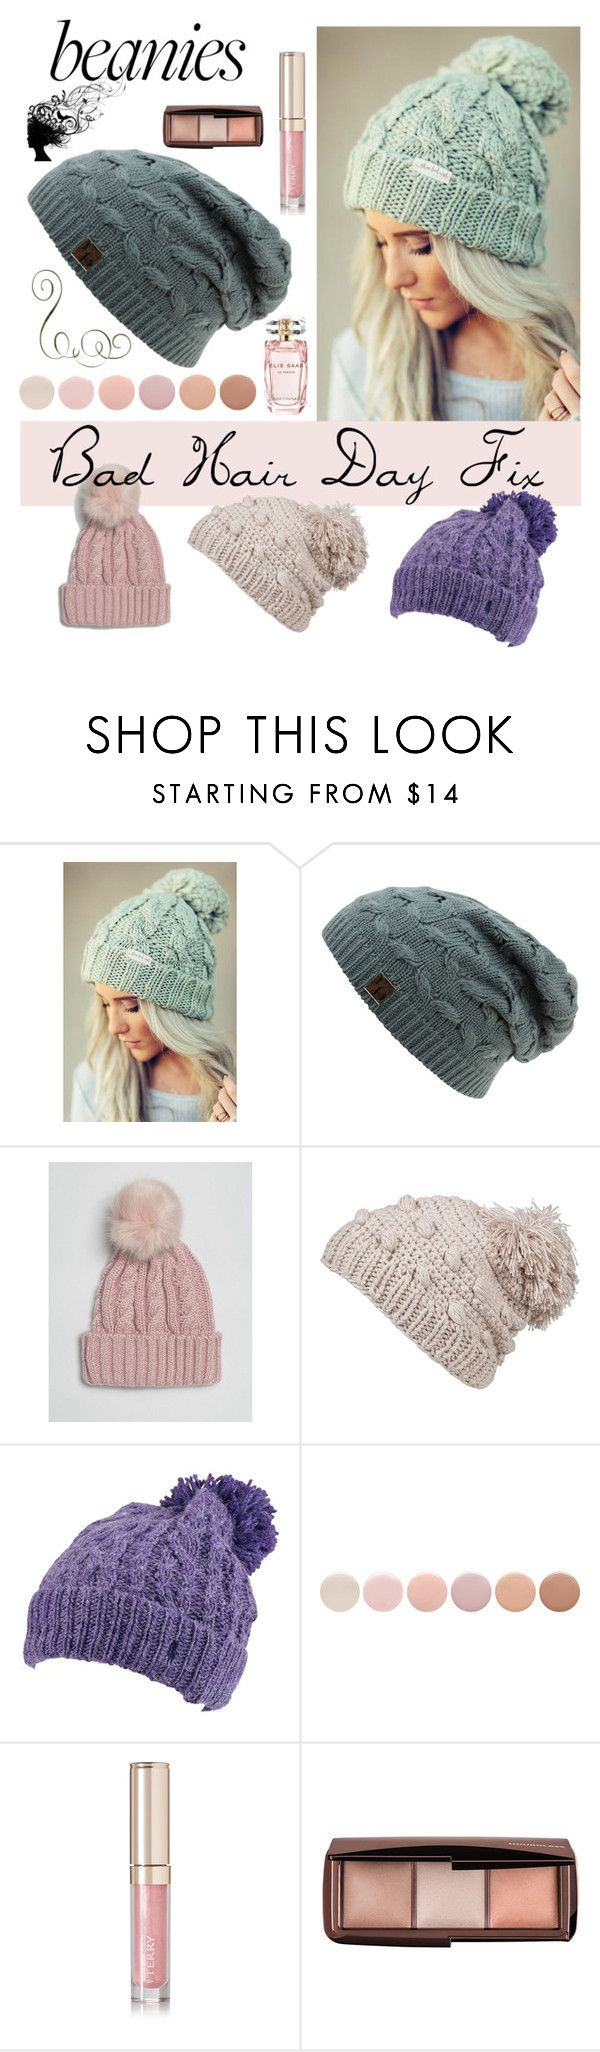 """Beanies -Bad Hair Day"" by arimagedesign ❤ liked on Polyvore featuring ASOS, prAna, Polo Ralph Lauren, Deborah Lippmann, By Terry, Elie Saab and beainies"